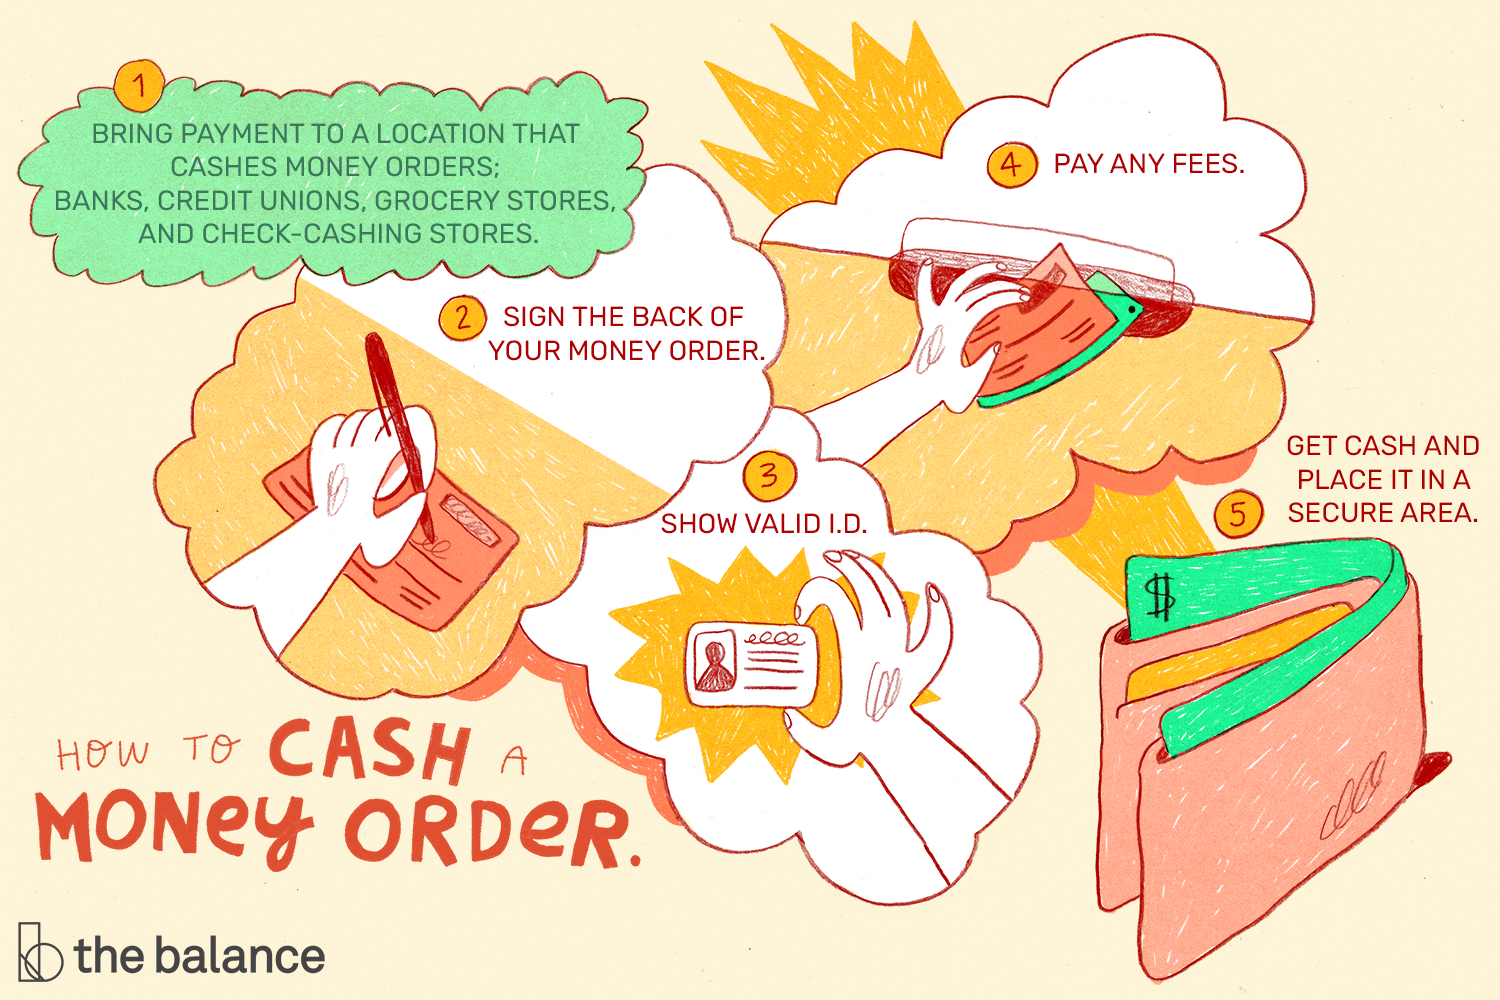 How And Where To Cash A Money Order